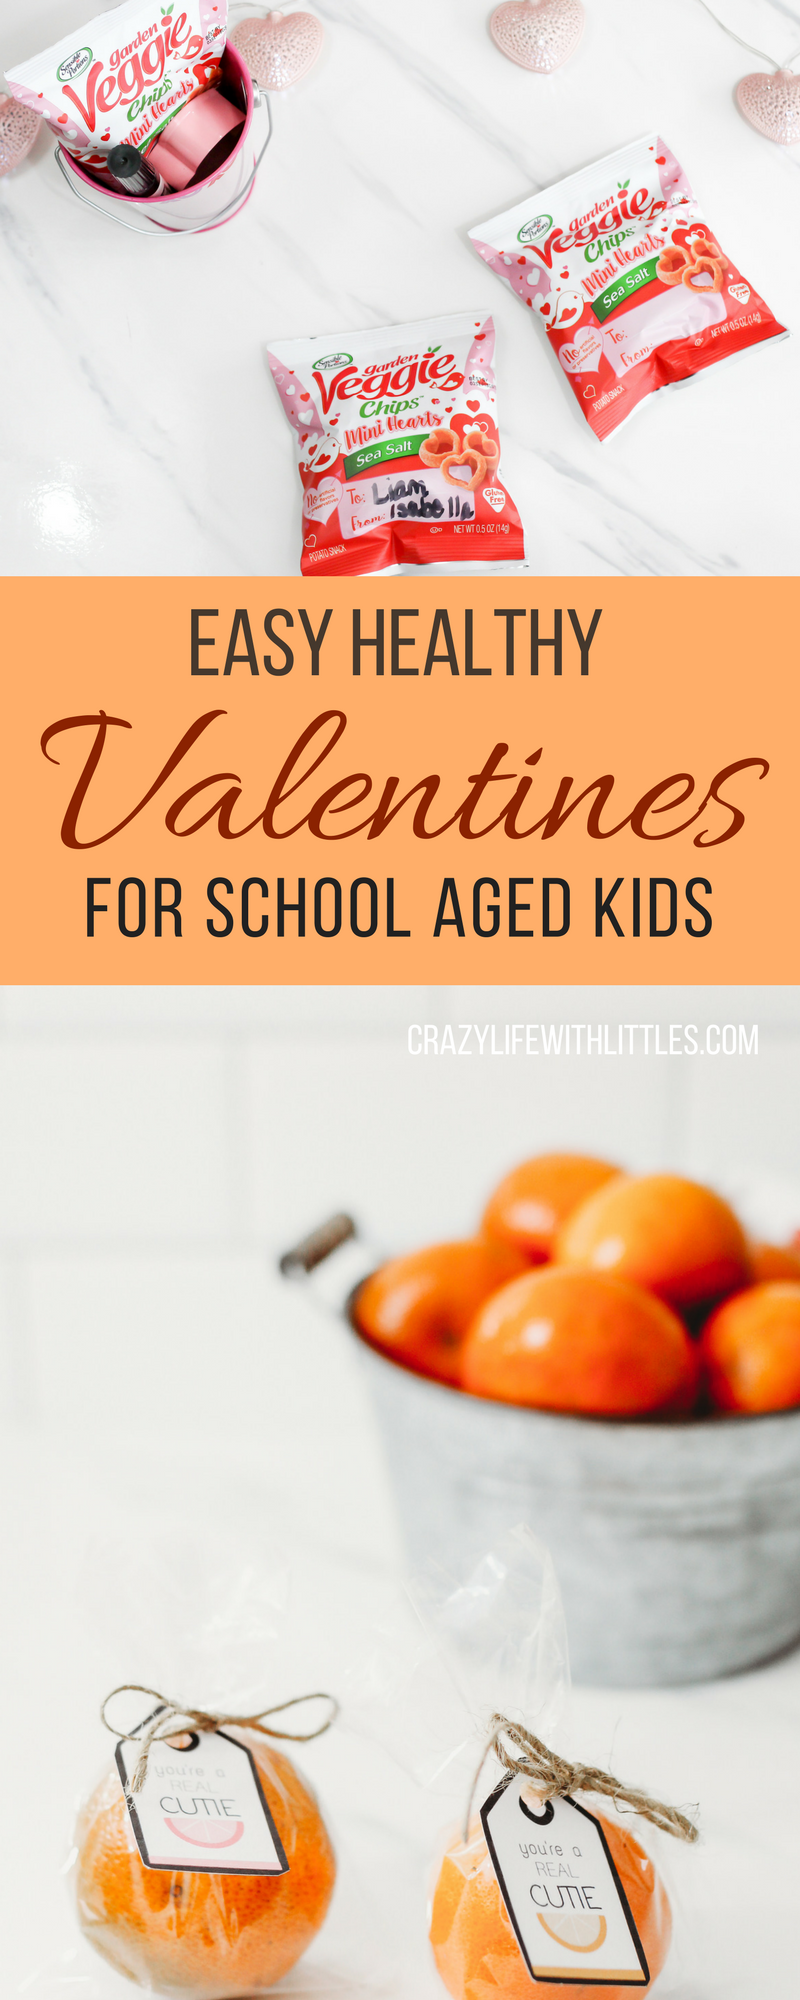 Easy Healthy Valentines for School aged kids, healthy valentines, valentines day, school valentines, toddler valentines, preschool valentines